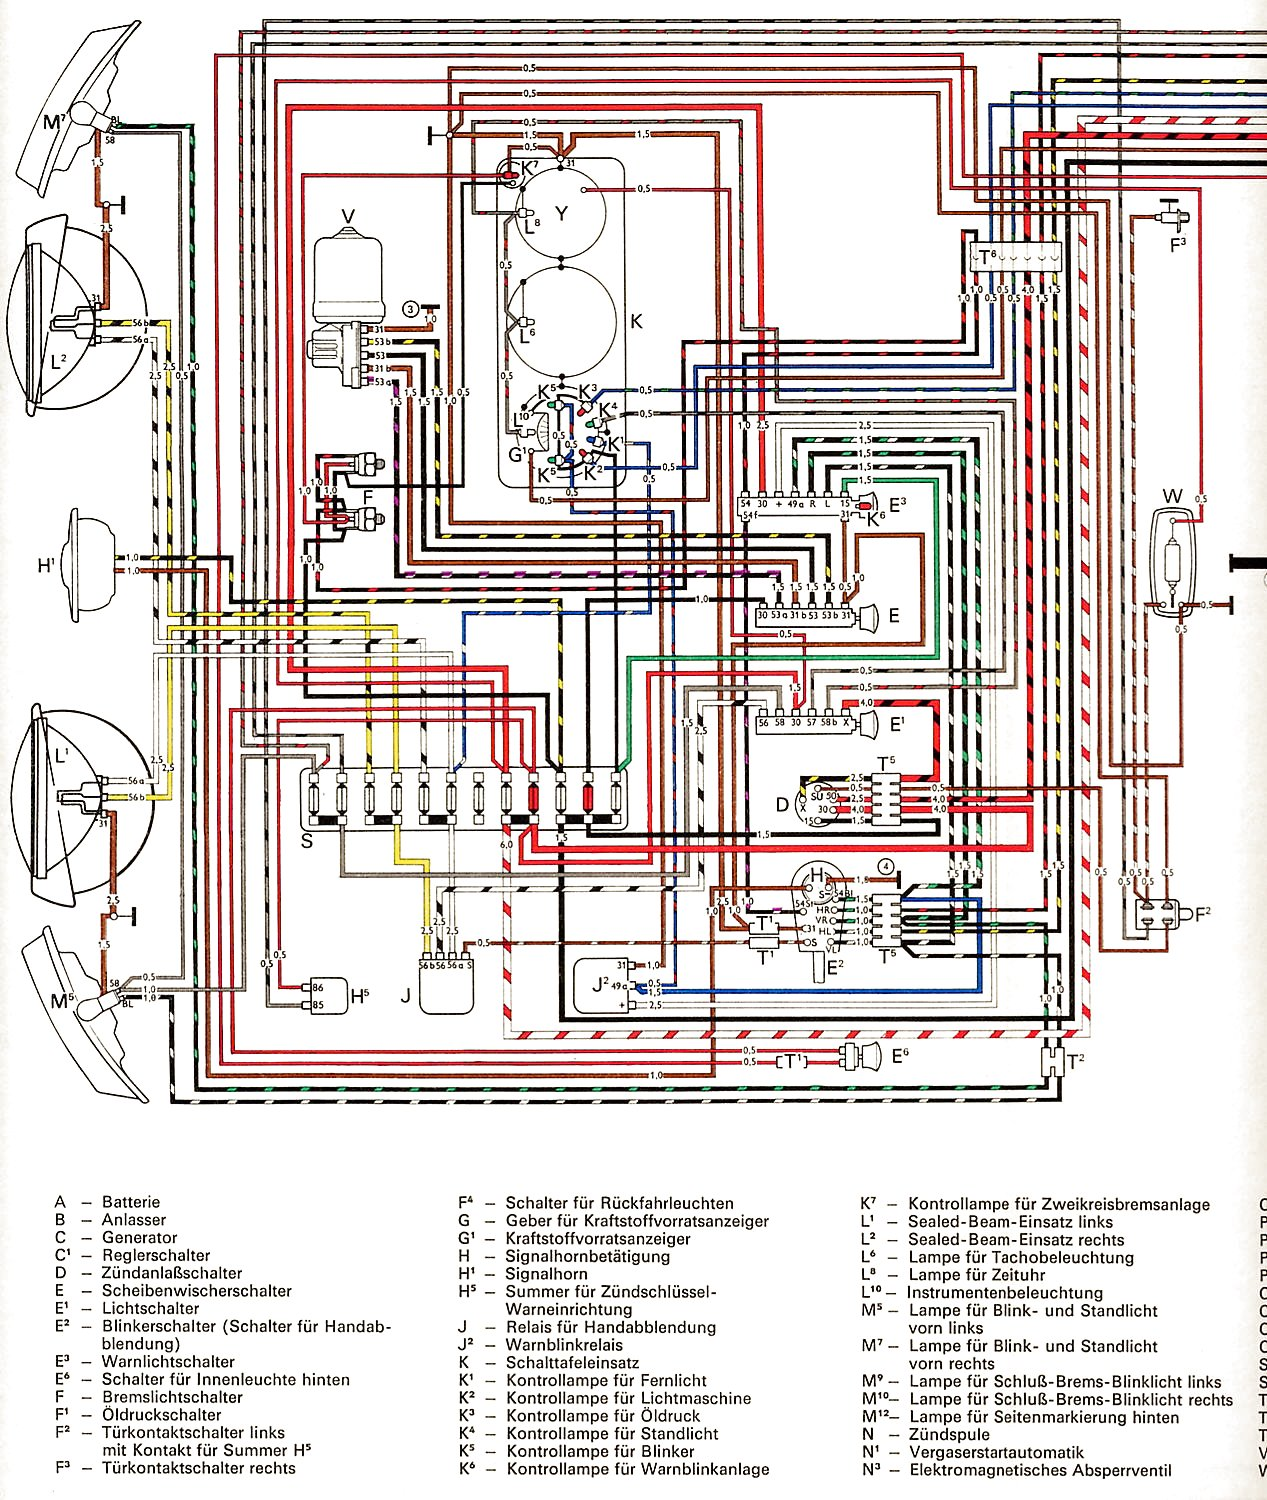 Transporter_USA_from_August_1970 1 wiring diagrams \u2022 j squared co Basic Electrical Wiring Diagrams at readyjetset.co